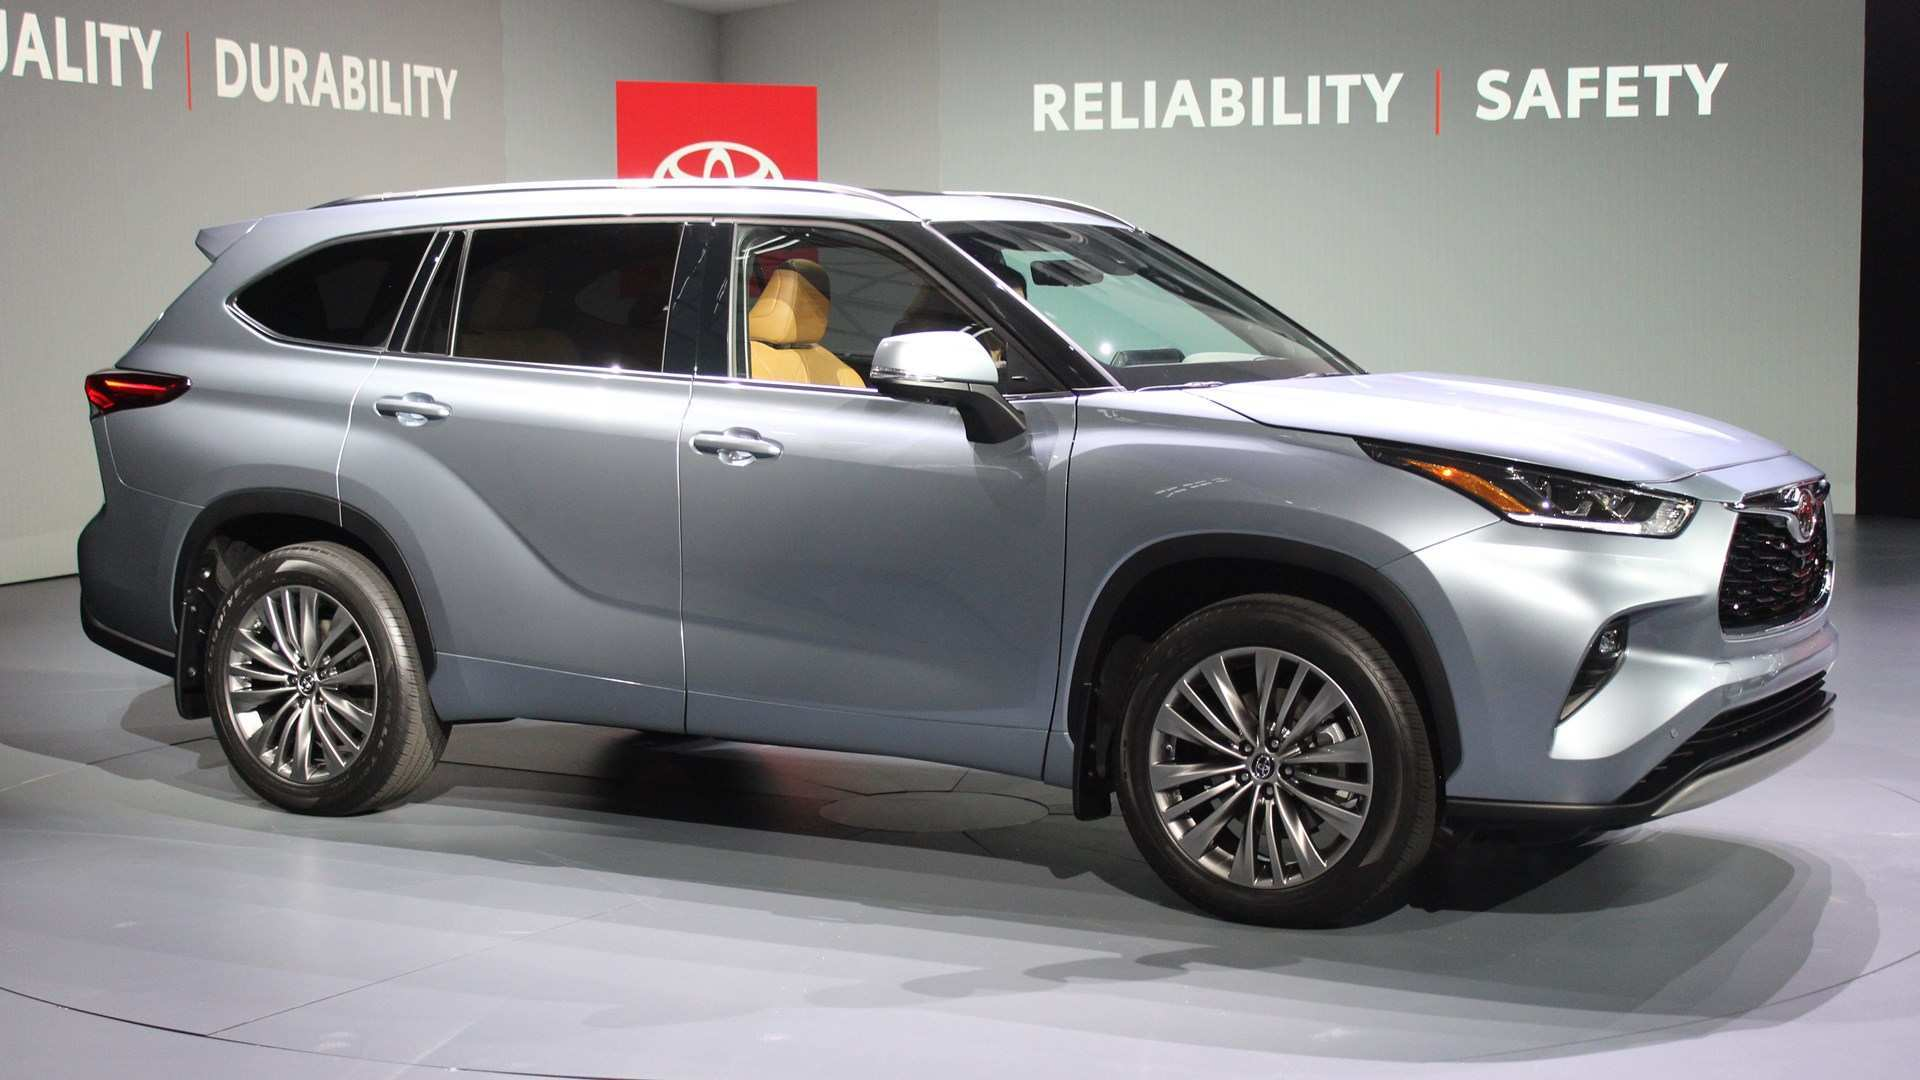 37 All New Toyota Highlander 2020 Release Date Exterior by Toyota Highlander 2020 Release Date